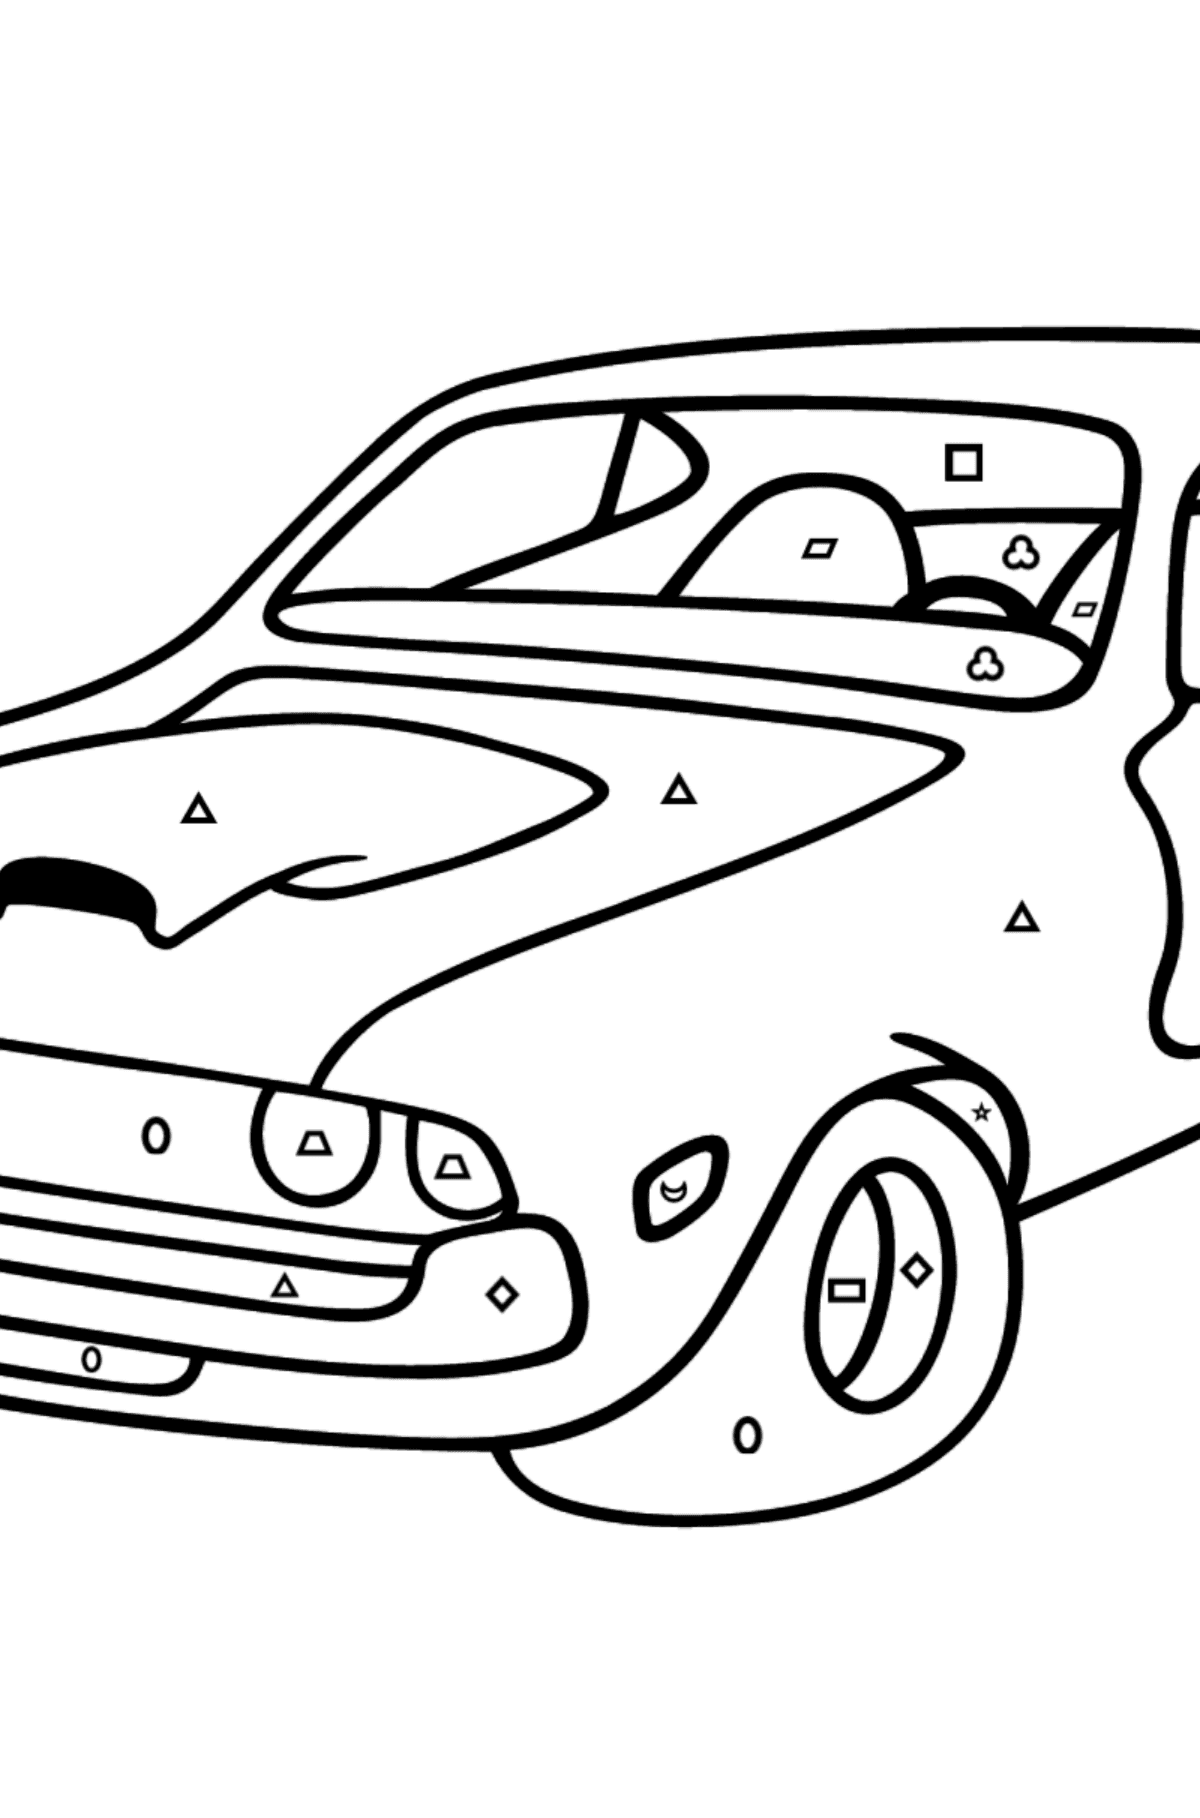 Chevrolet-Chevy Sports Car coloring page - Coloring by Geometric Shapes for Kids